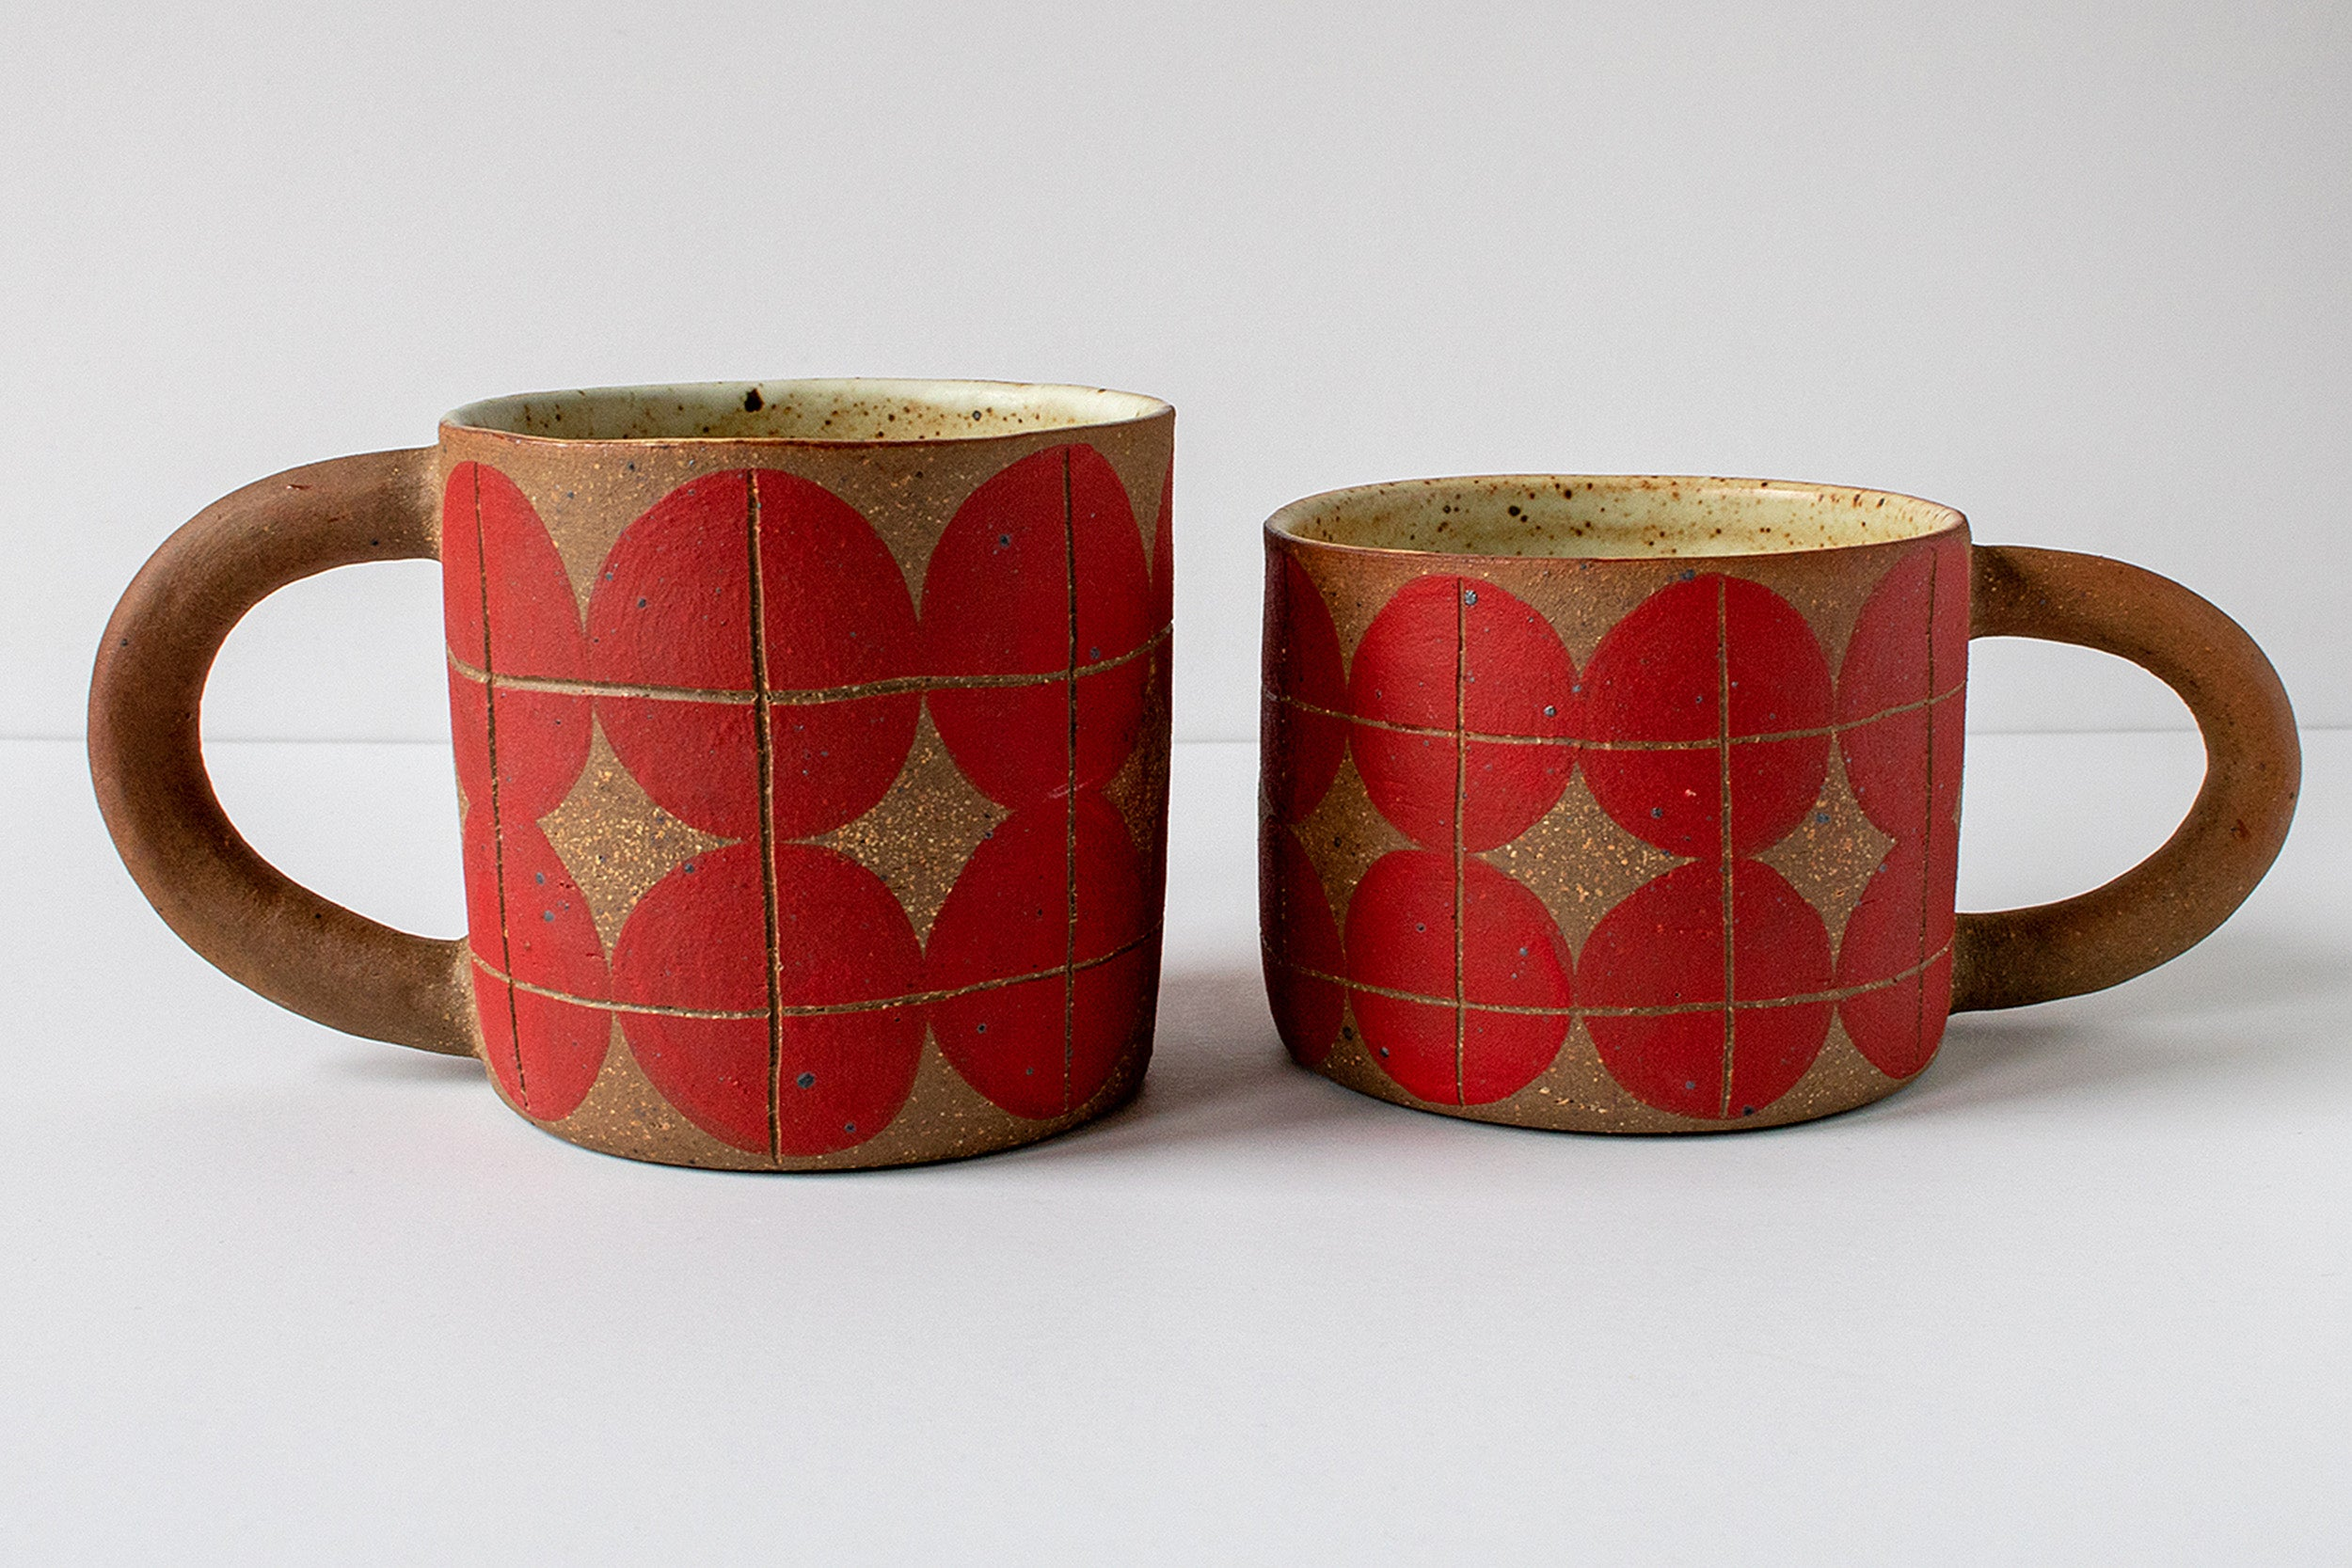 Two gold and red mugs by artist Alice Nasto.